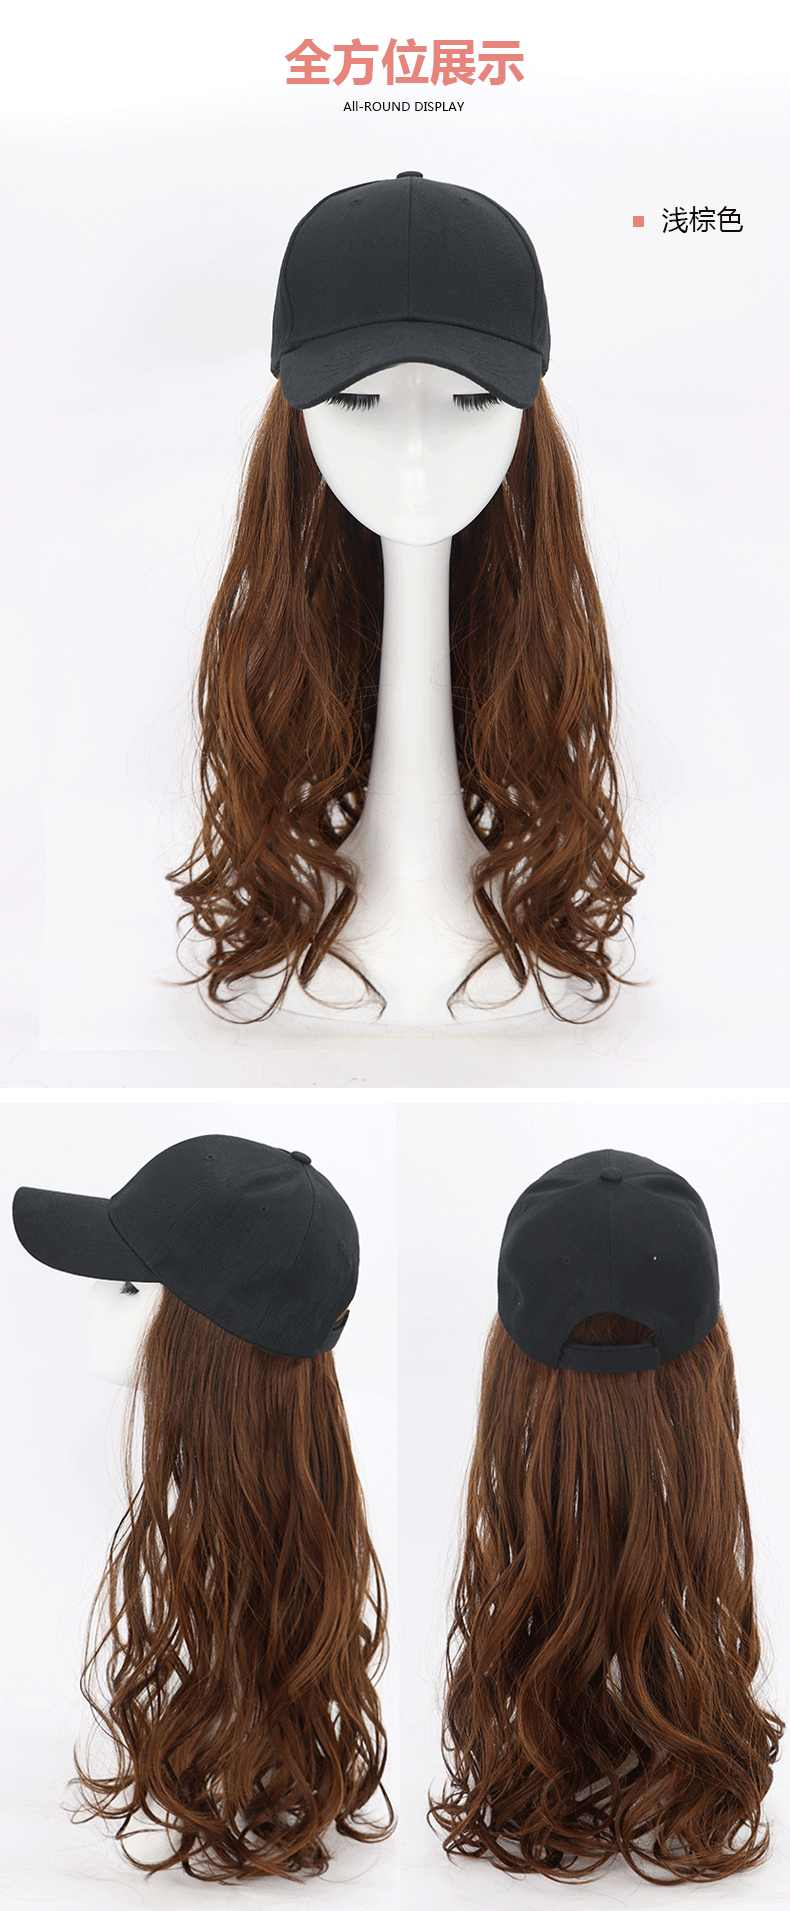 2020 Japanese and Korean style women's wig cap, net red wig long curl hair natural big wave baseball cap wig one fashion trend